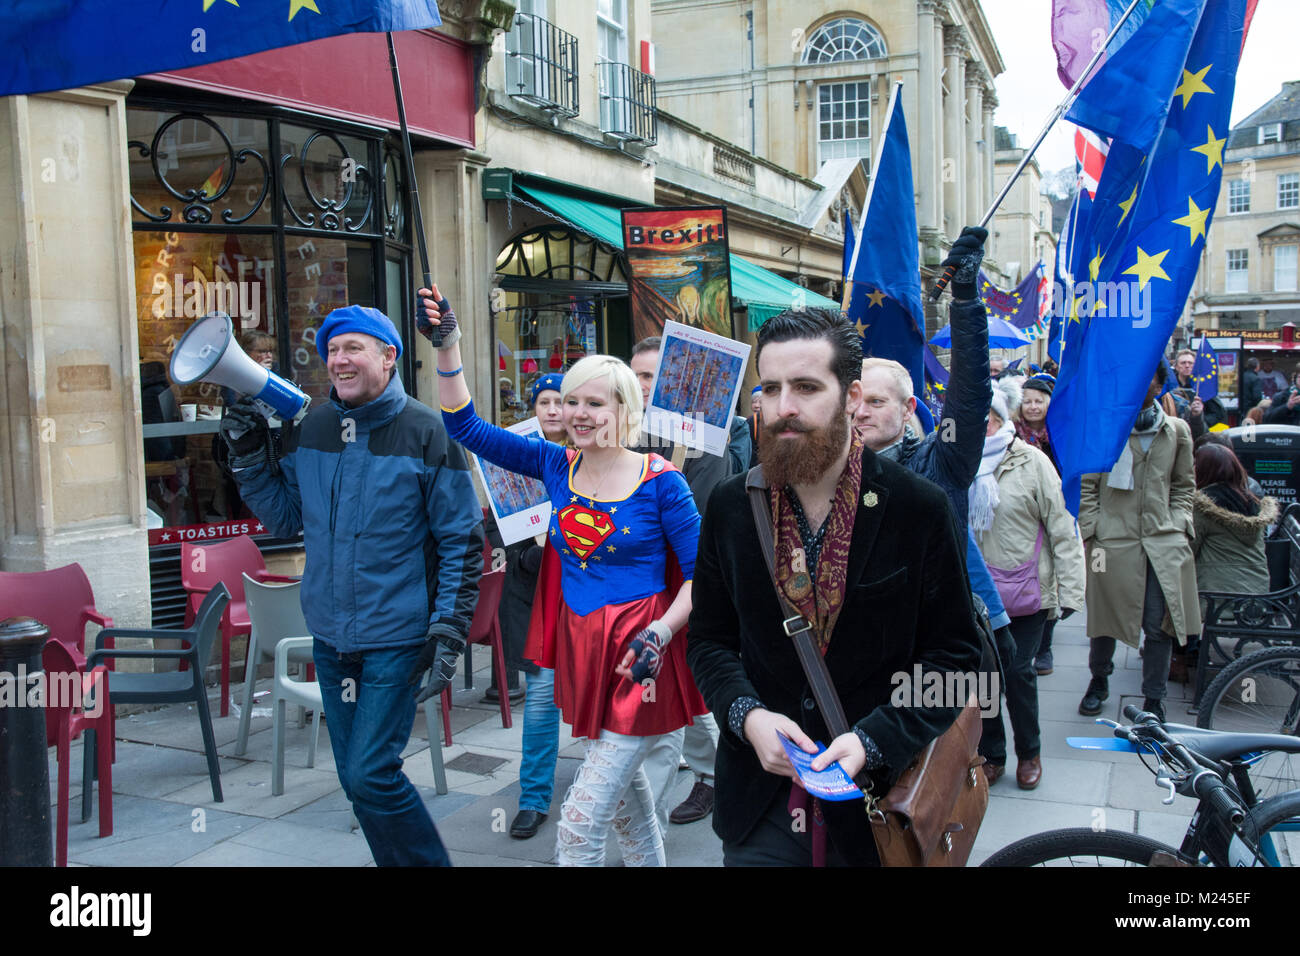 Bath, UK, 4th February 2018. Bath Pulse for Europe, A youth lead anti Brexit event in Bath City centre featuring - Stock Image